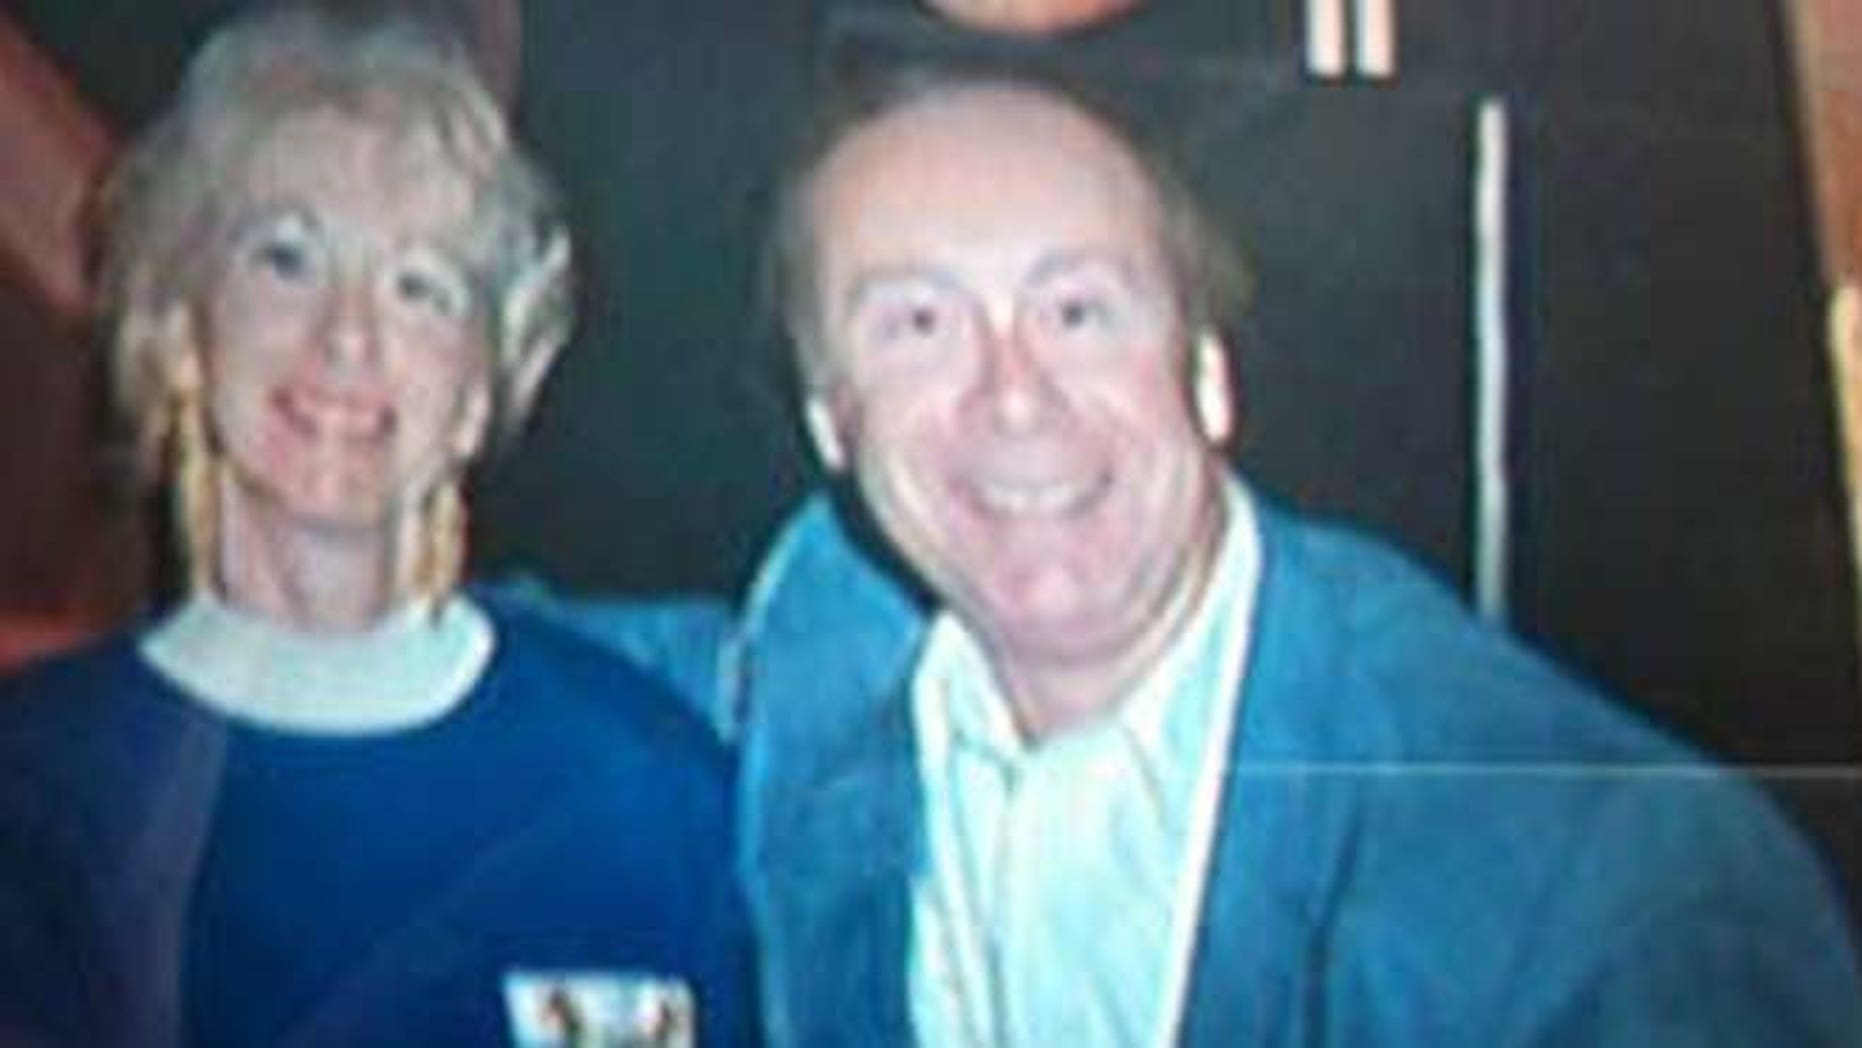 This undated photo shows John Magee, 69, and Geraldine Magee, 67, who were found dead in their home by their daughter on Dec. 14, 2011.